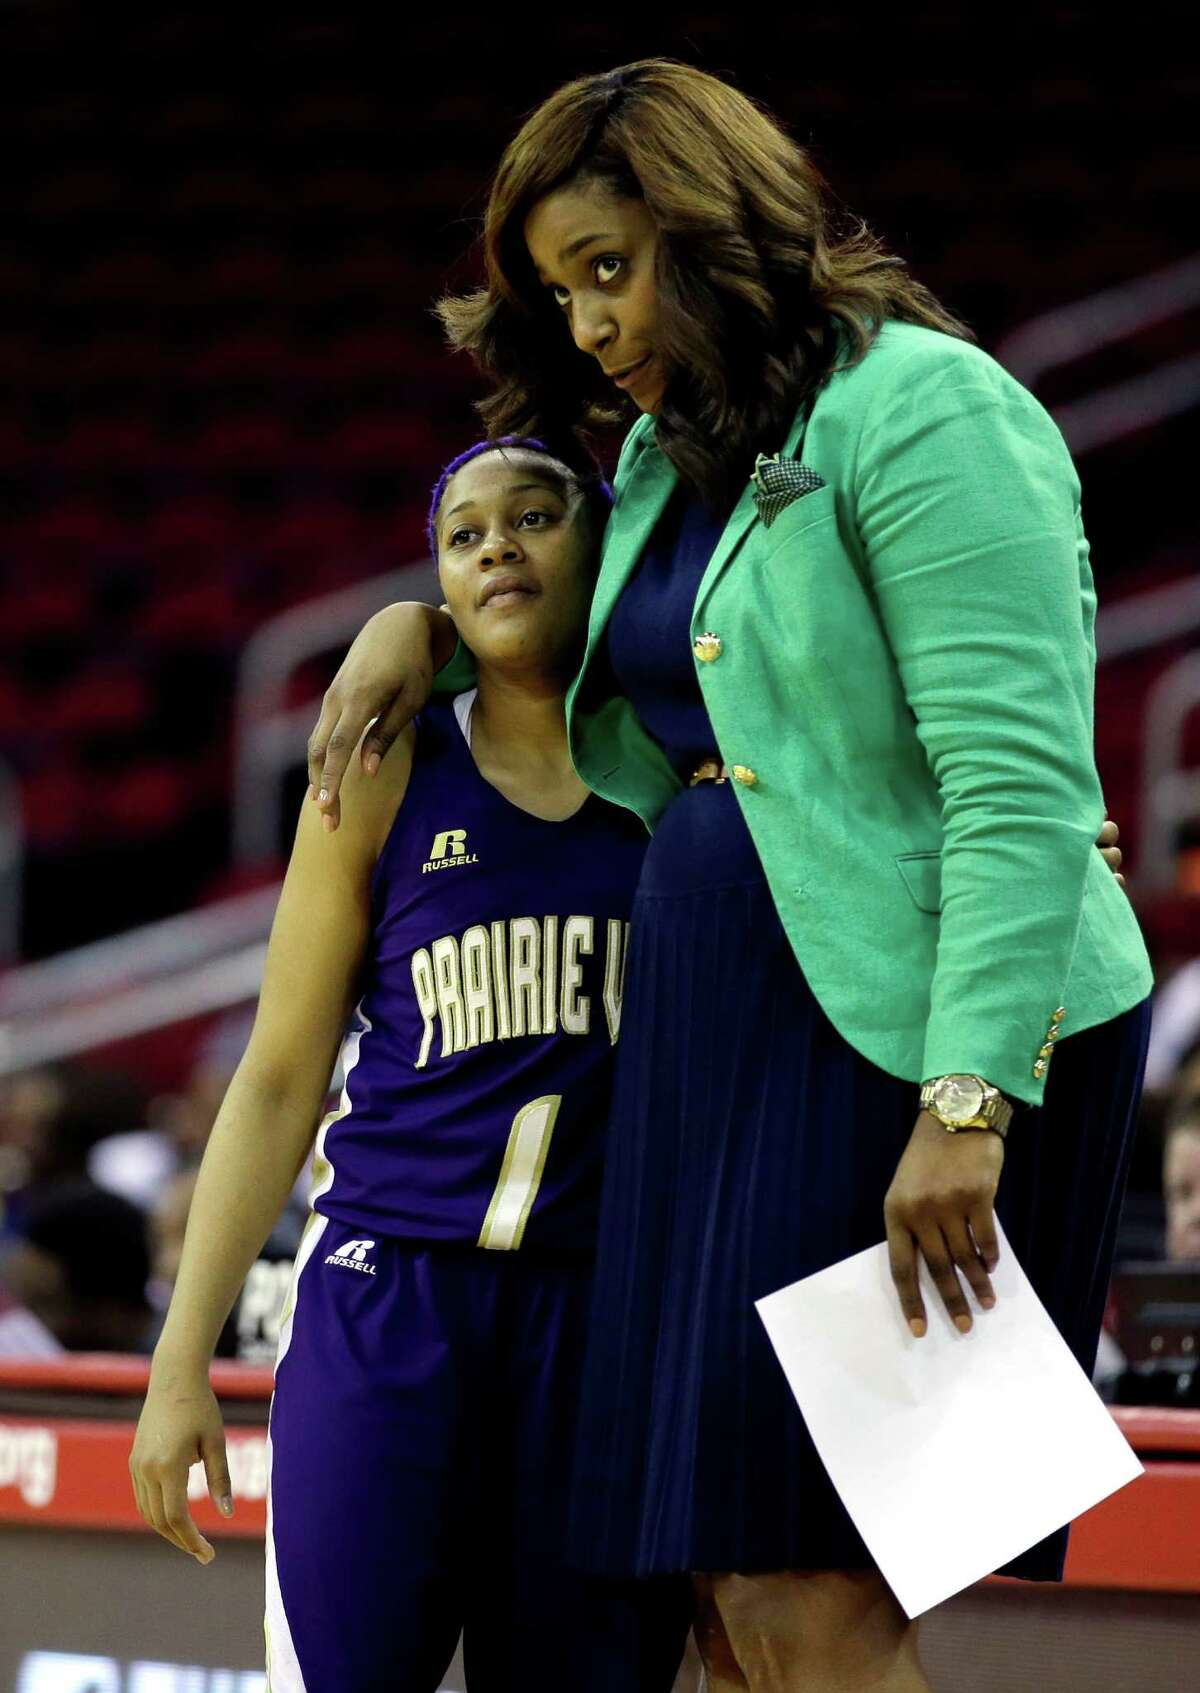 Prairie View A&M's Jeanette Jackson (1) gets a hug from her coach Dawn Brown after leaving the game during the closing minutes of the second half of an NCCA college basketball game against Southern in the semifinals of the Southwestern Athletic Conference tournament Friday, March 14, 2014, in Houston. Prairie View A&M won 72-43. (AP Photo/David J. Phillip)